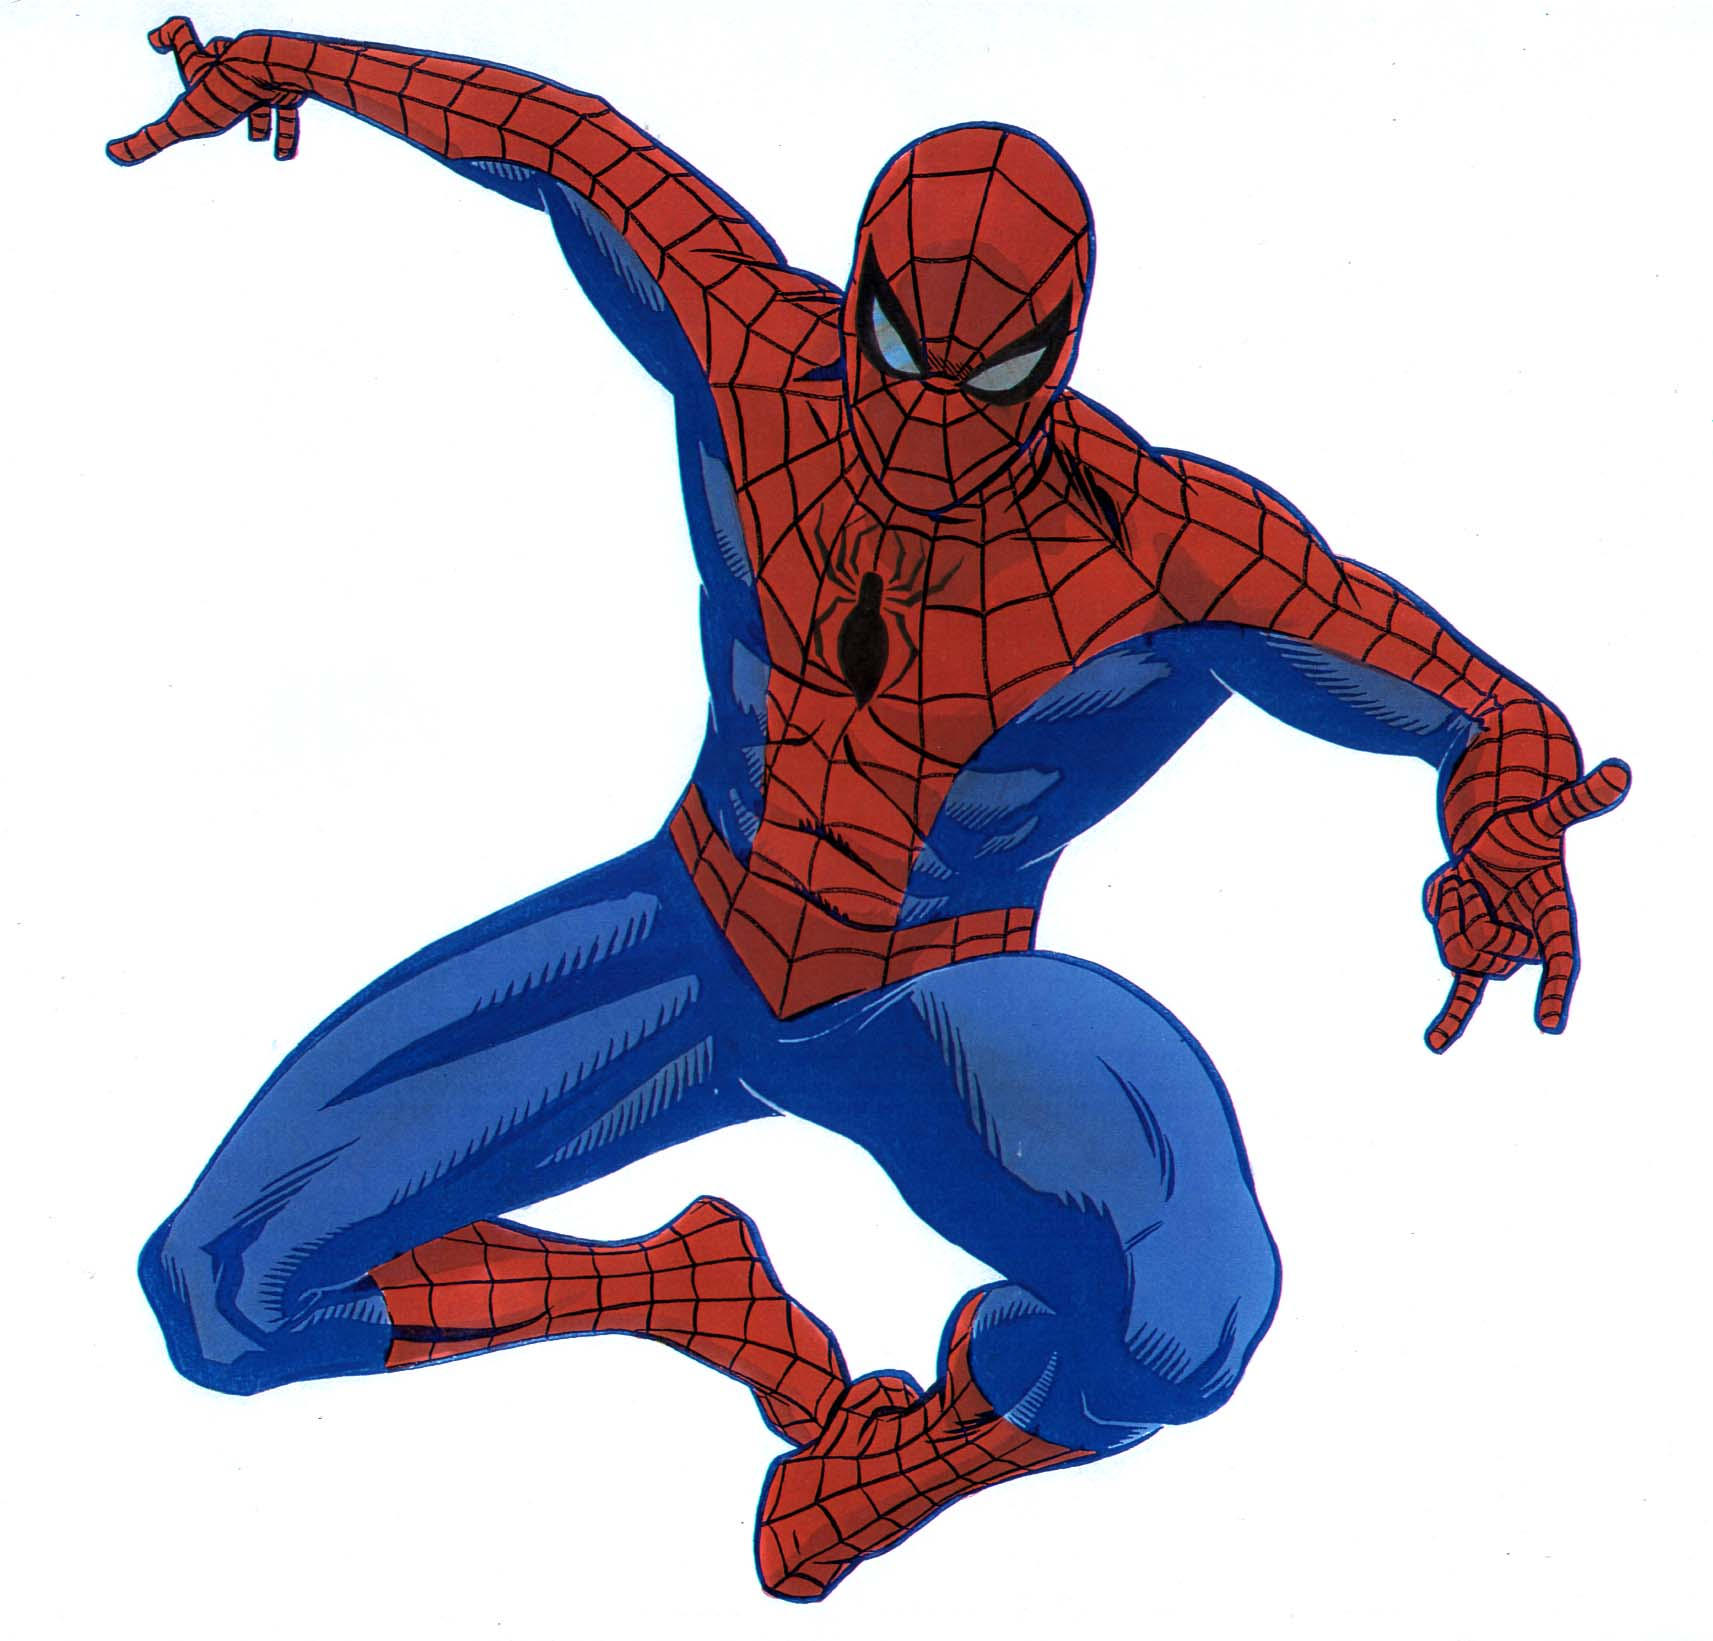 depotting.ml , likes · 2, talking about this. depotting.ml is the largest seller of licensed Super Hero merchandise on the web!/5(K).